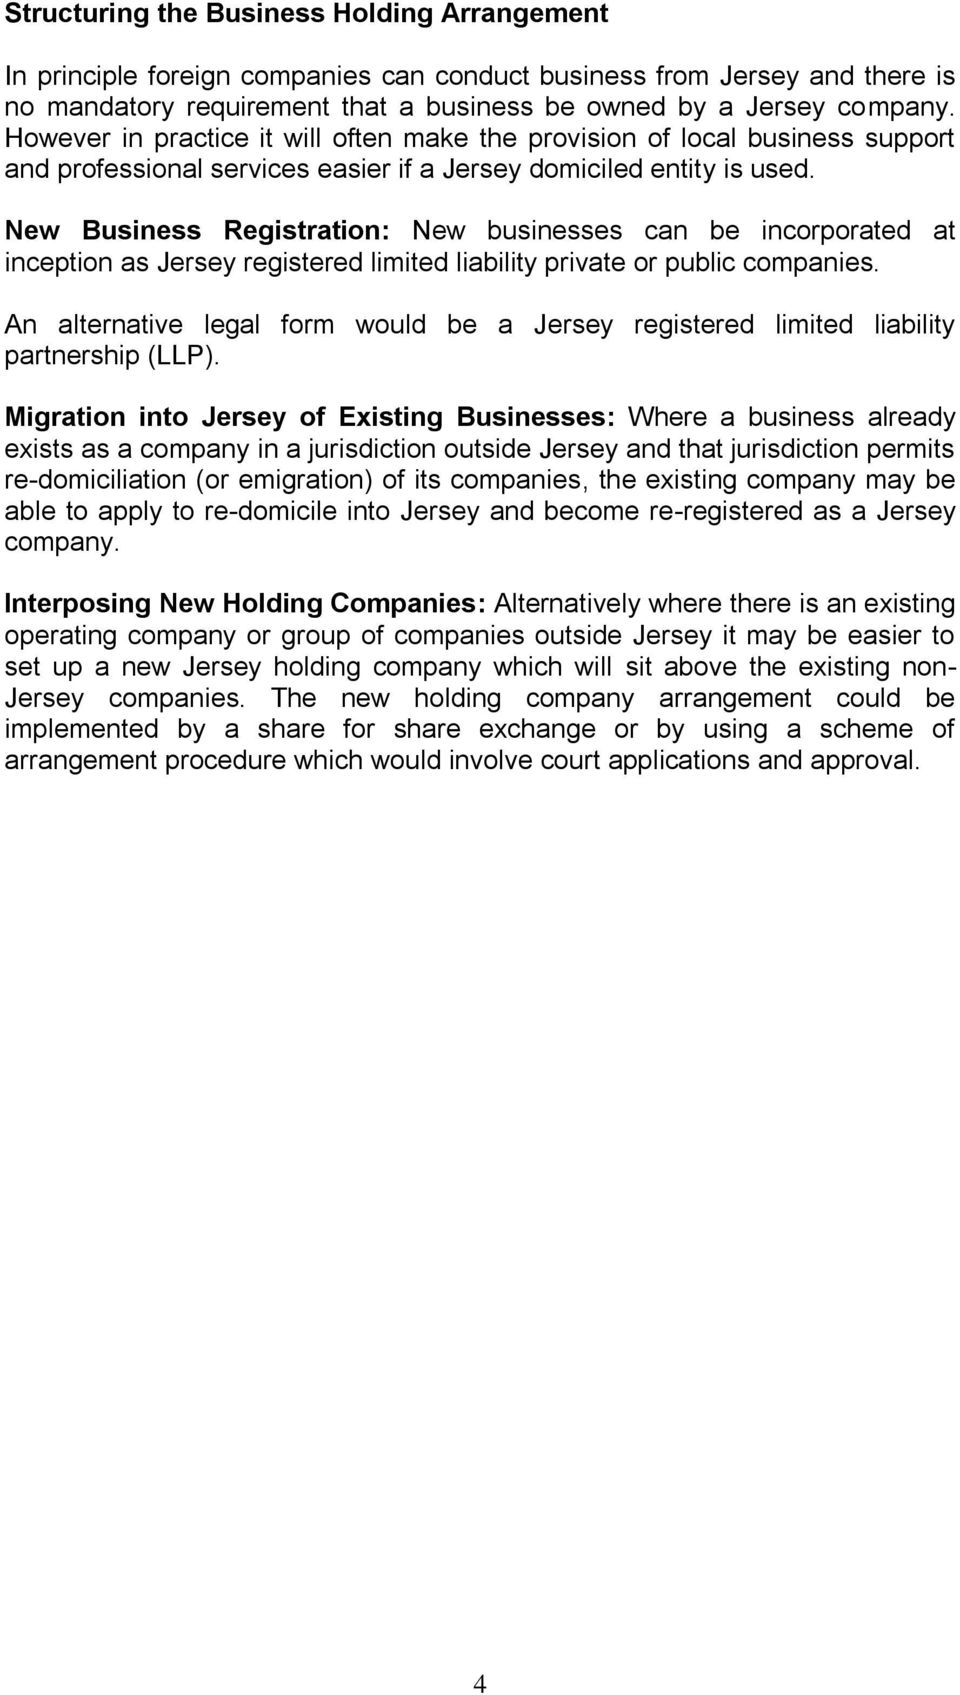 New Business Registration: New businesses can be incorporated at inception as Jersey registered limited liability private or public companies.